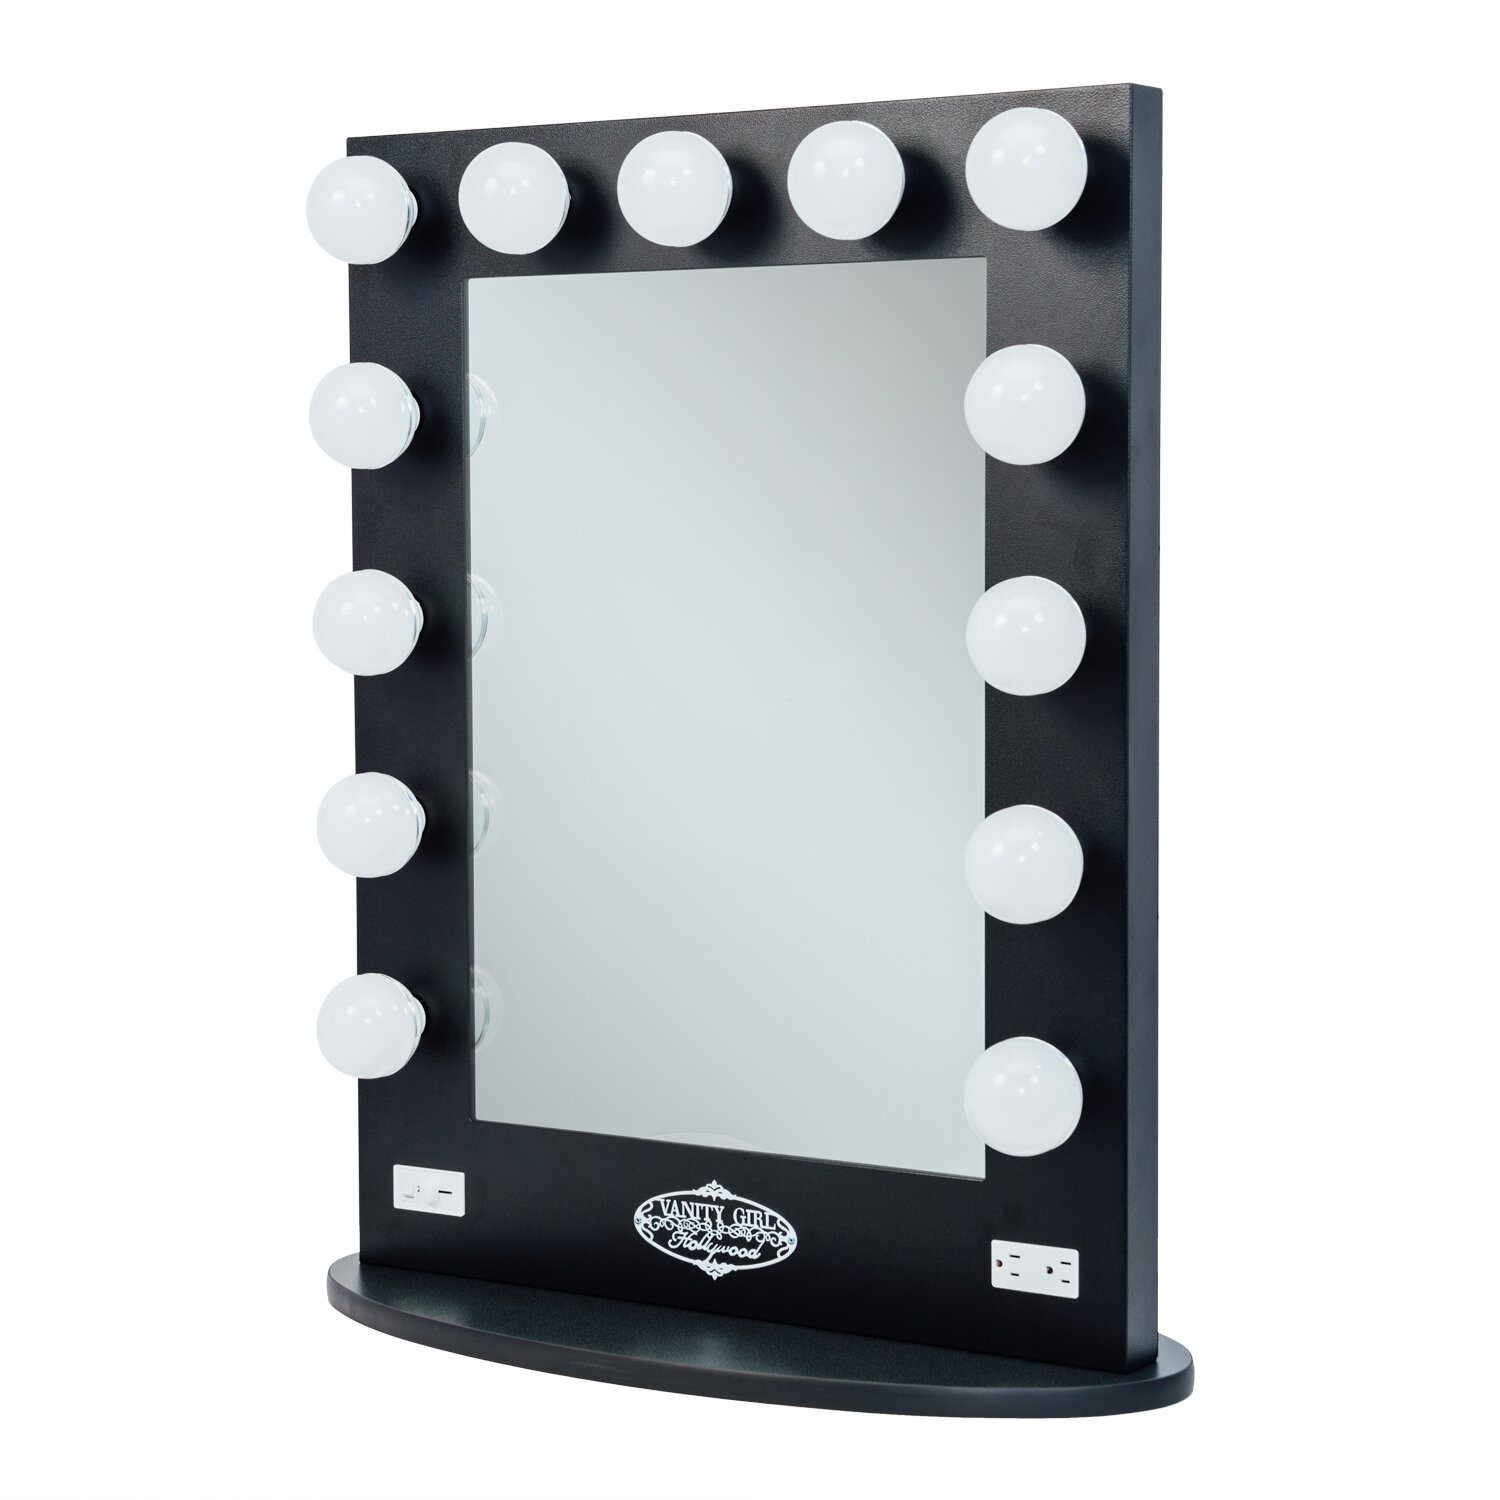 Vanity Mirror With Lights : Vanity Girl Hollywood Broadway Lighted Vanity Mirror & Reviews Wayfair